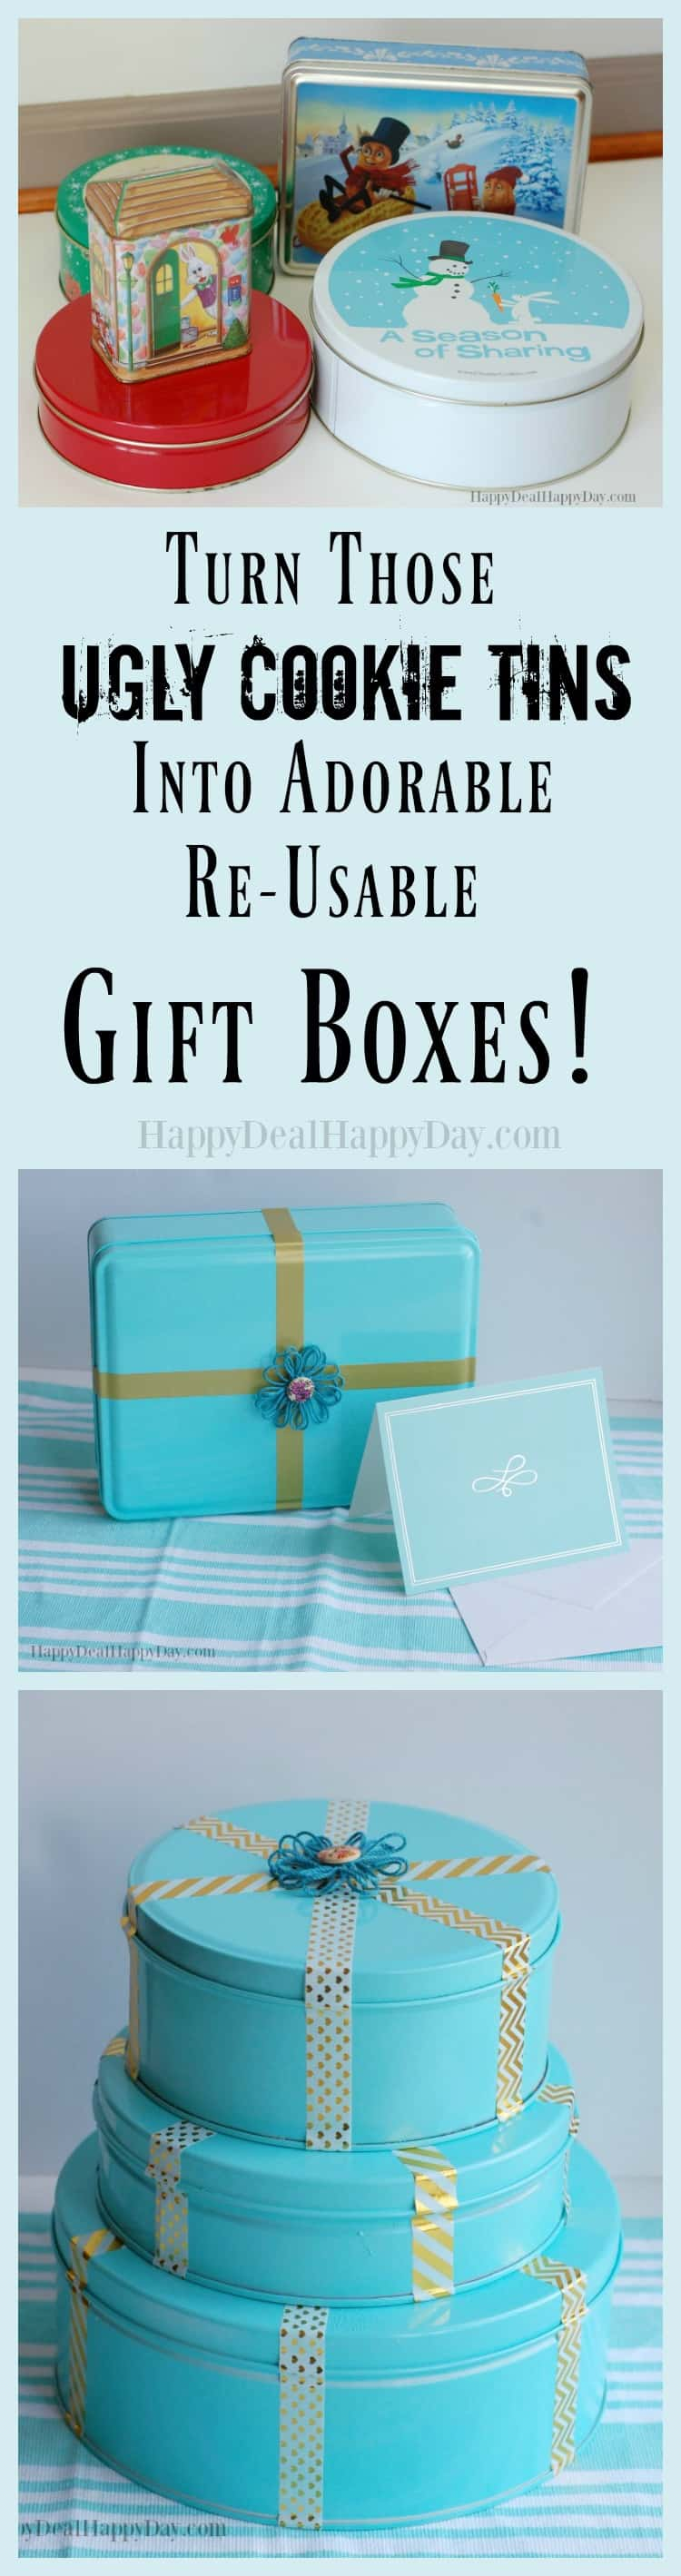 Turn Those Ugly Cookie Tins Into an Adorable Re-Usable Gift Box ...